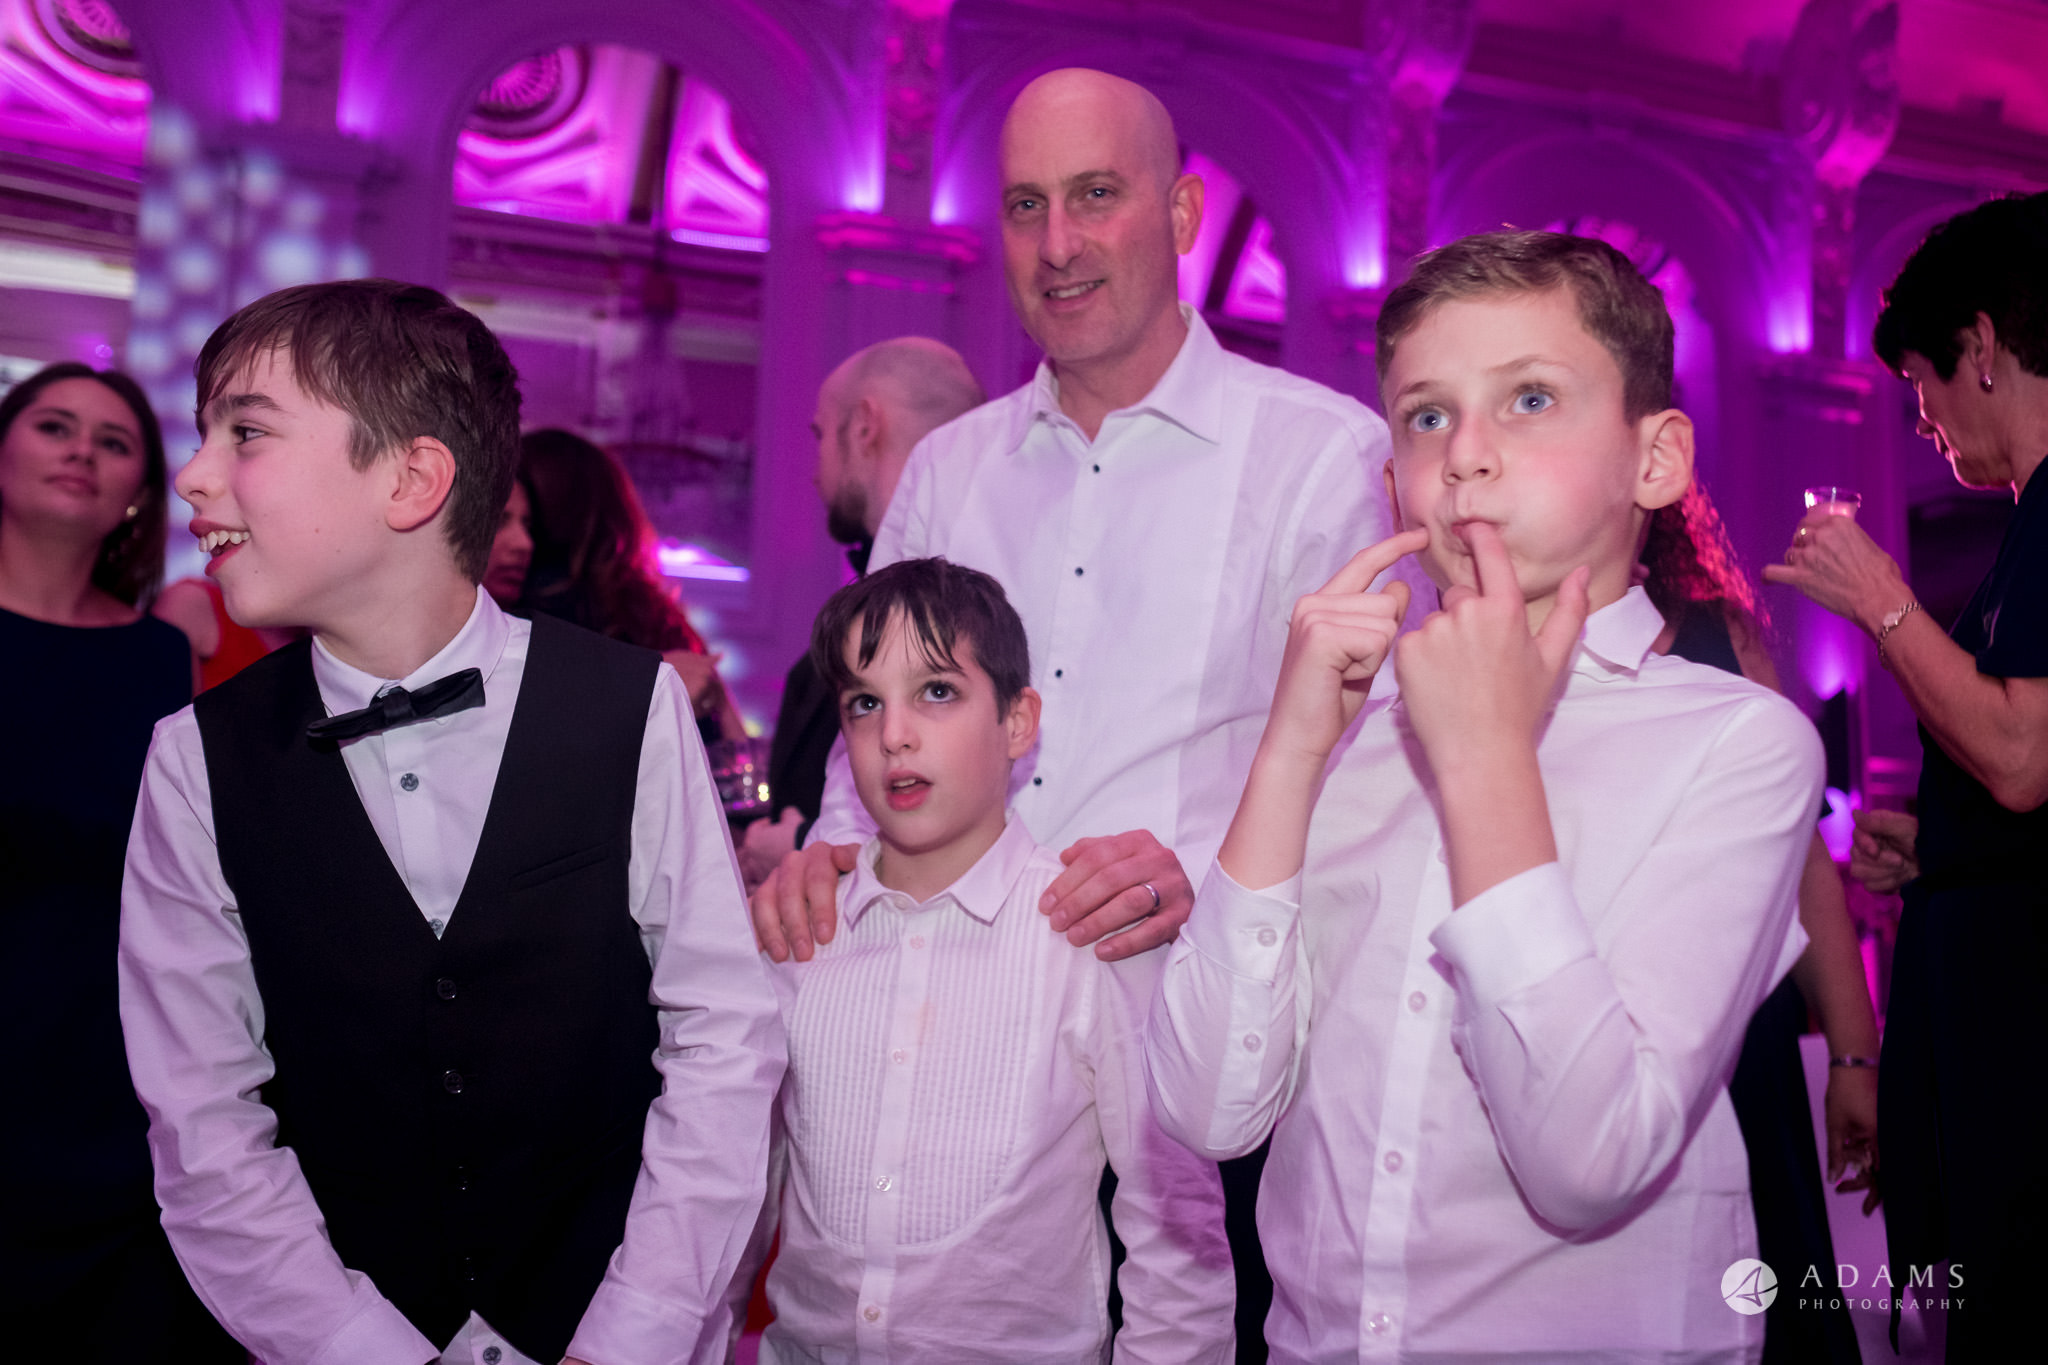 Grand connaught rooms wedding guests